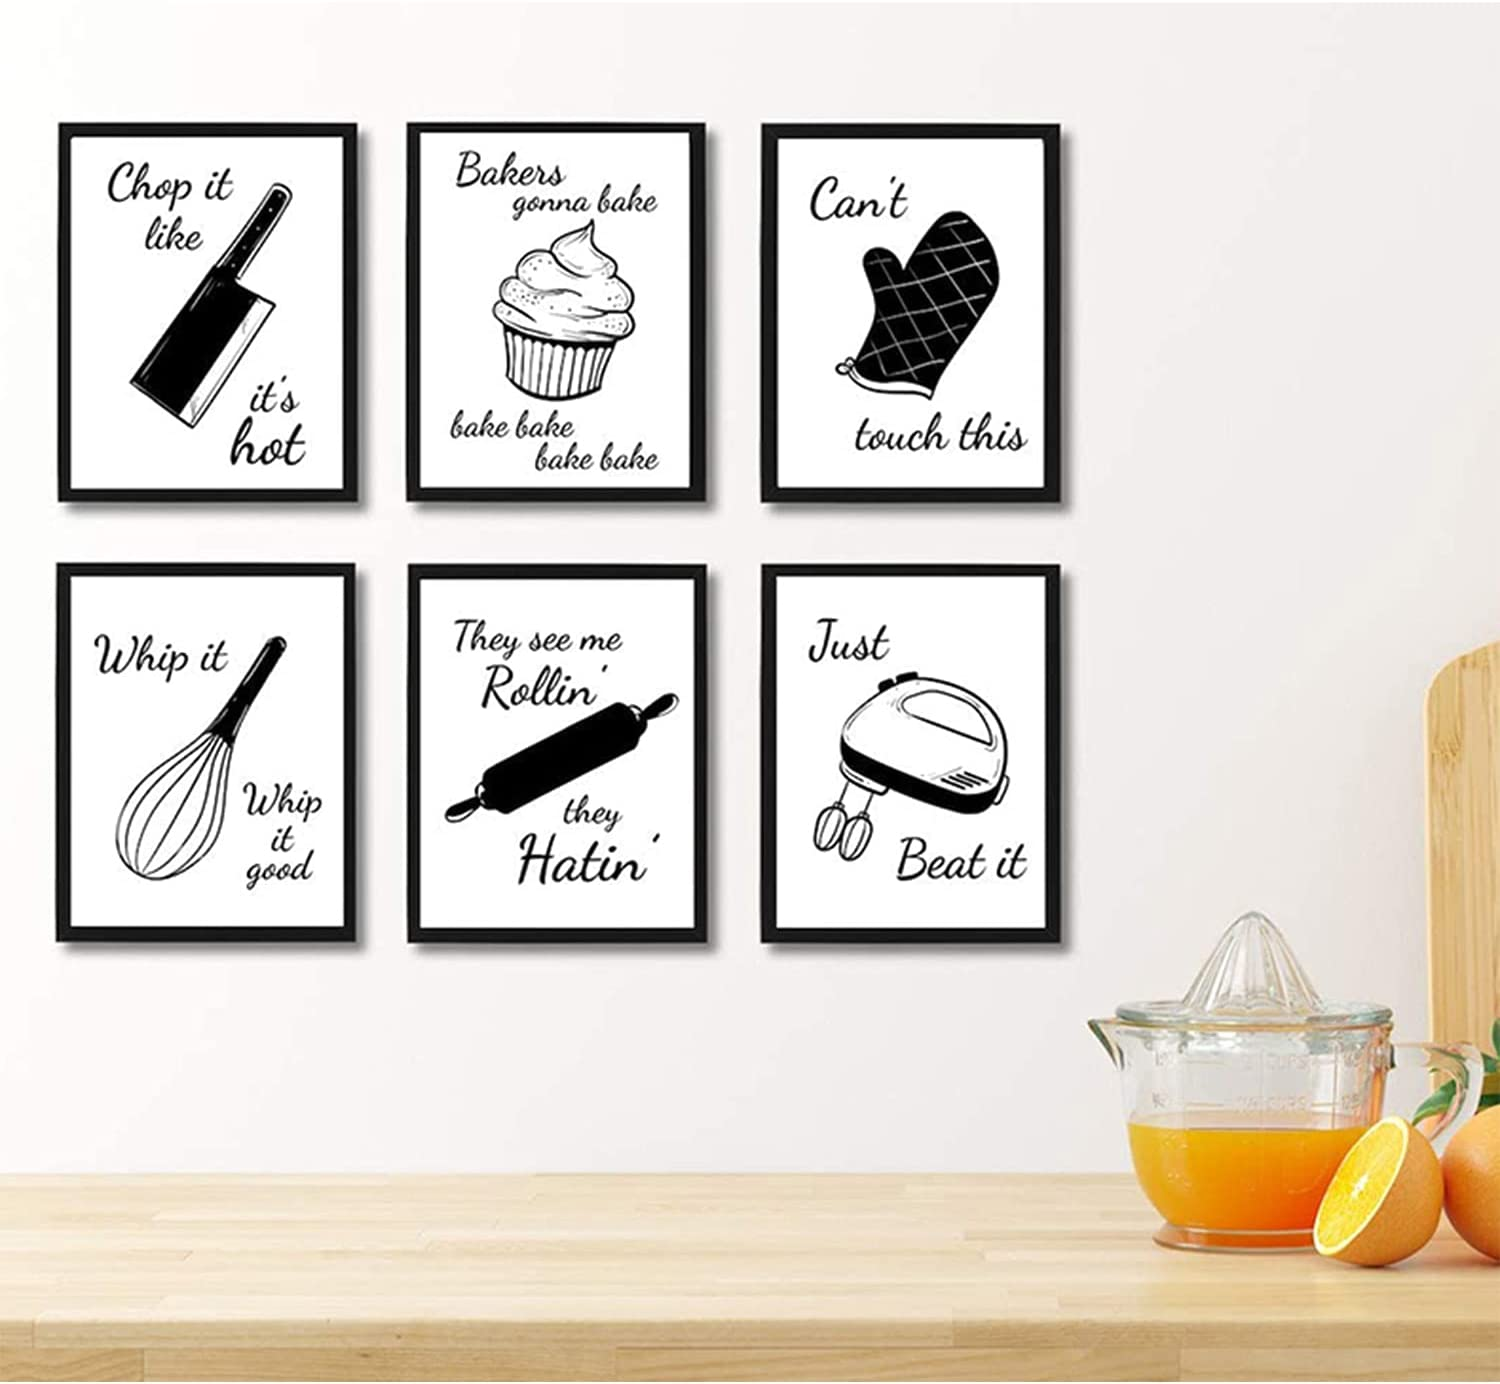 6 Pieces Kitchen Canvas Wall Art Decor, Funny Farmhouse Kitchenware with Sayings Posters, for Home Kitchen Baking room Cafe Restaurant Decorations